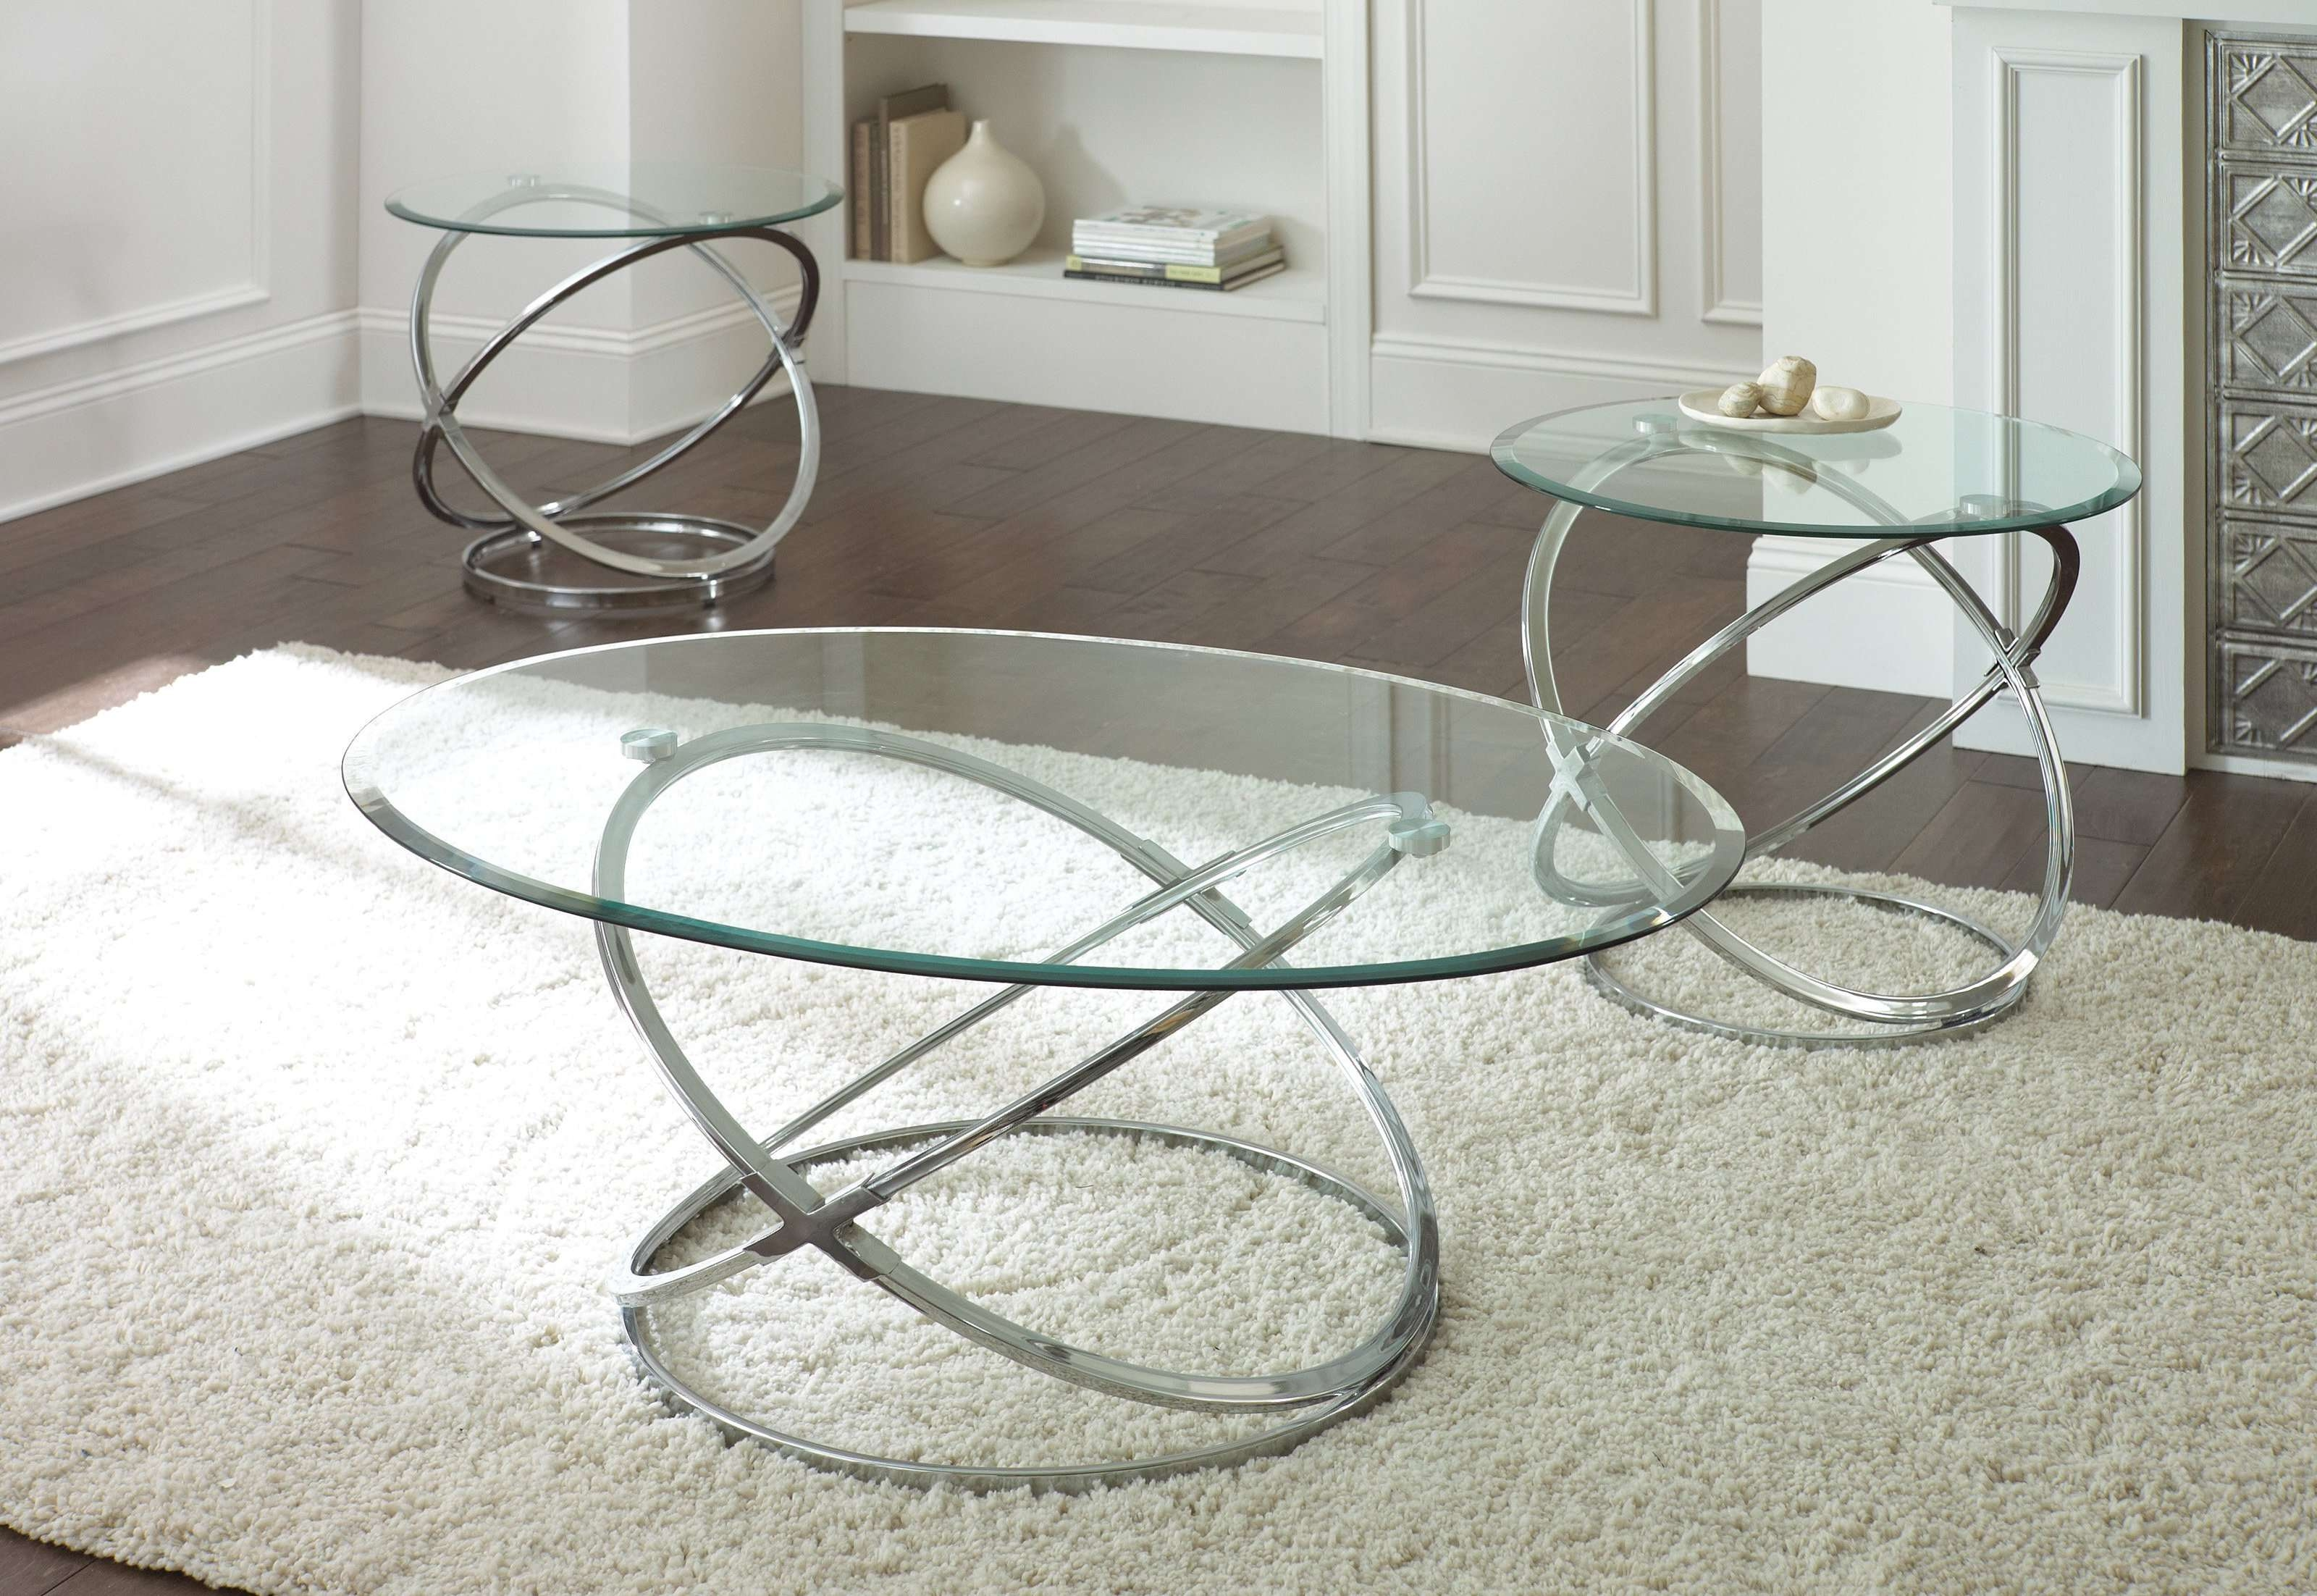 Interesting Unique Coffee Table Uk Design Ideas Unique Glass With Regard To 2018 Unique Glass Coffee Tables (View 7 of 20)